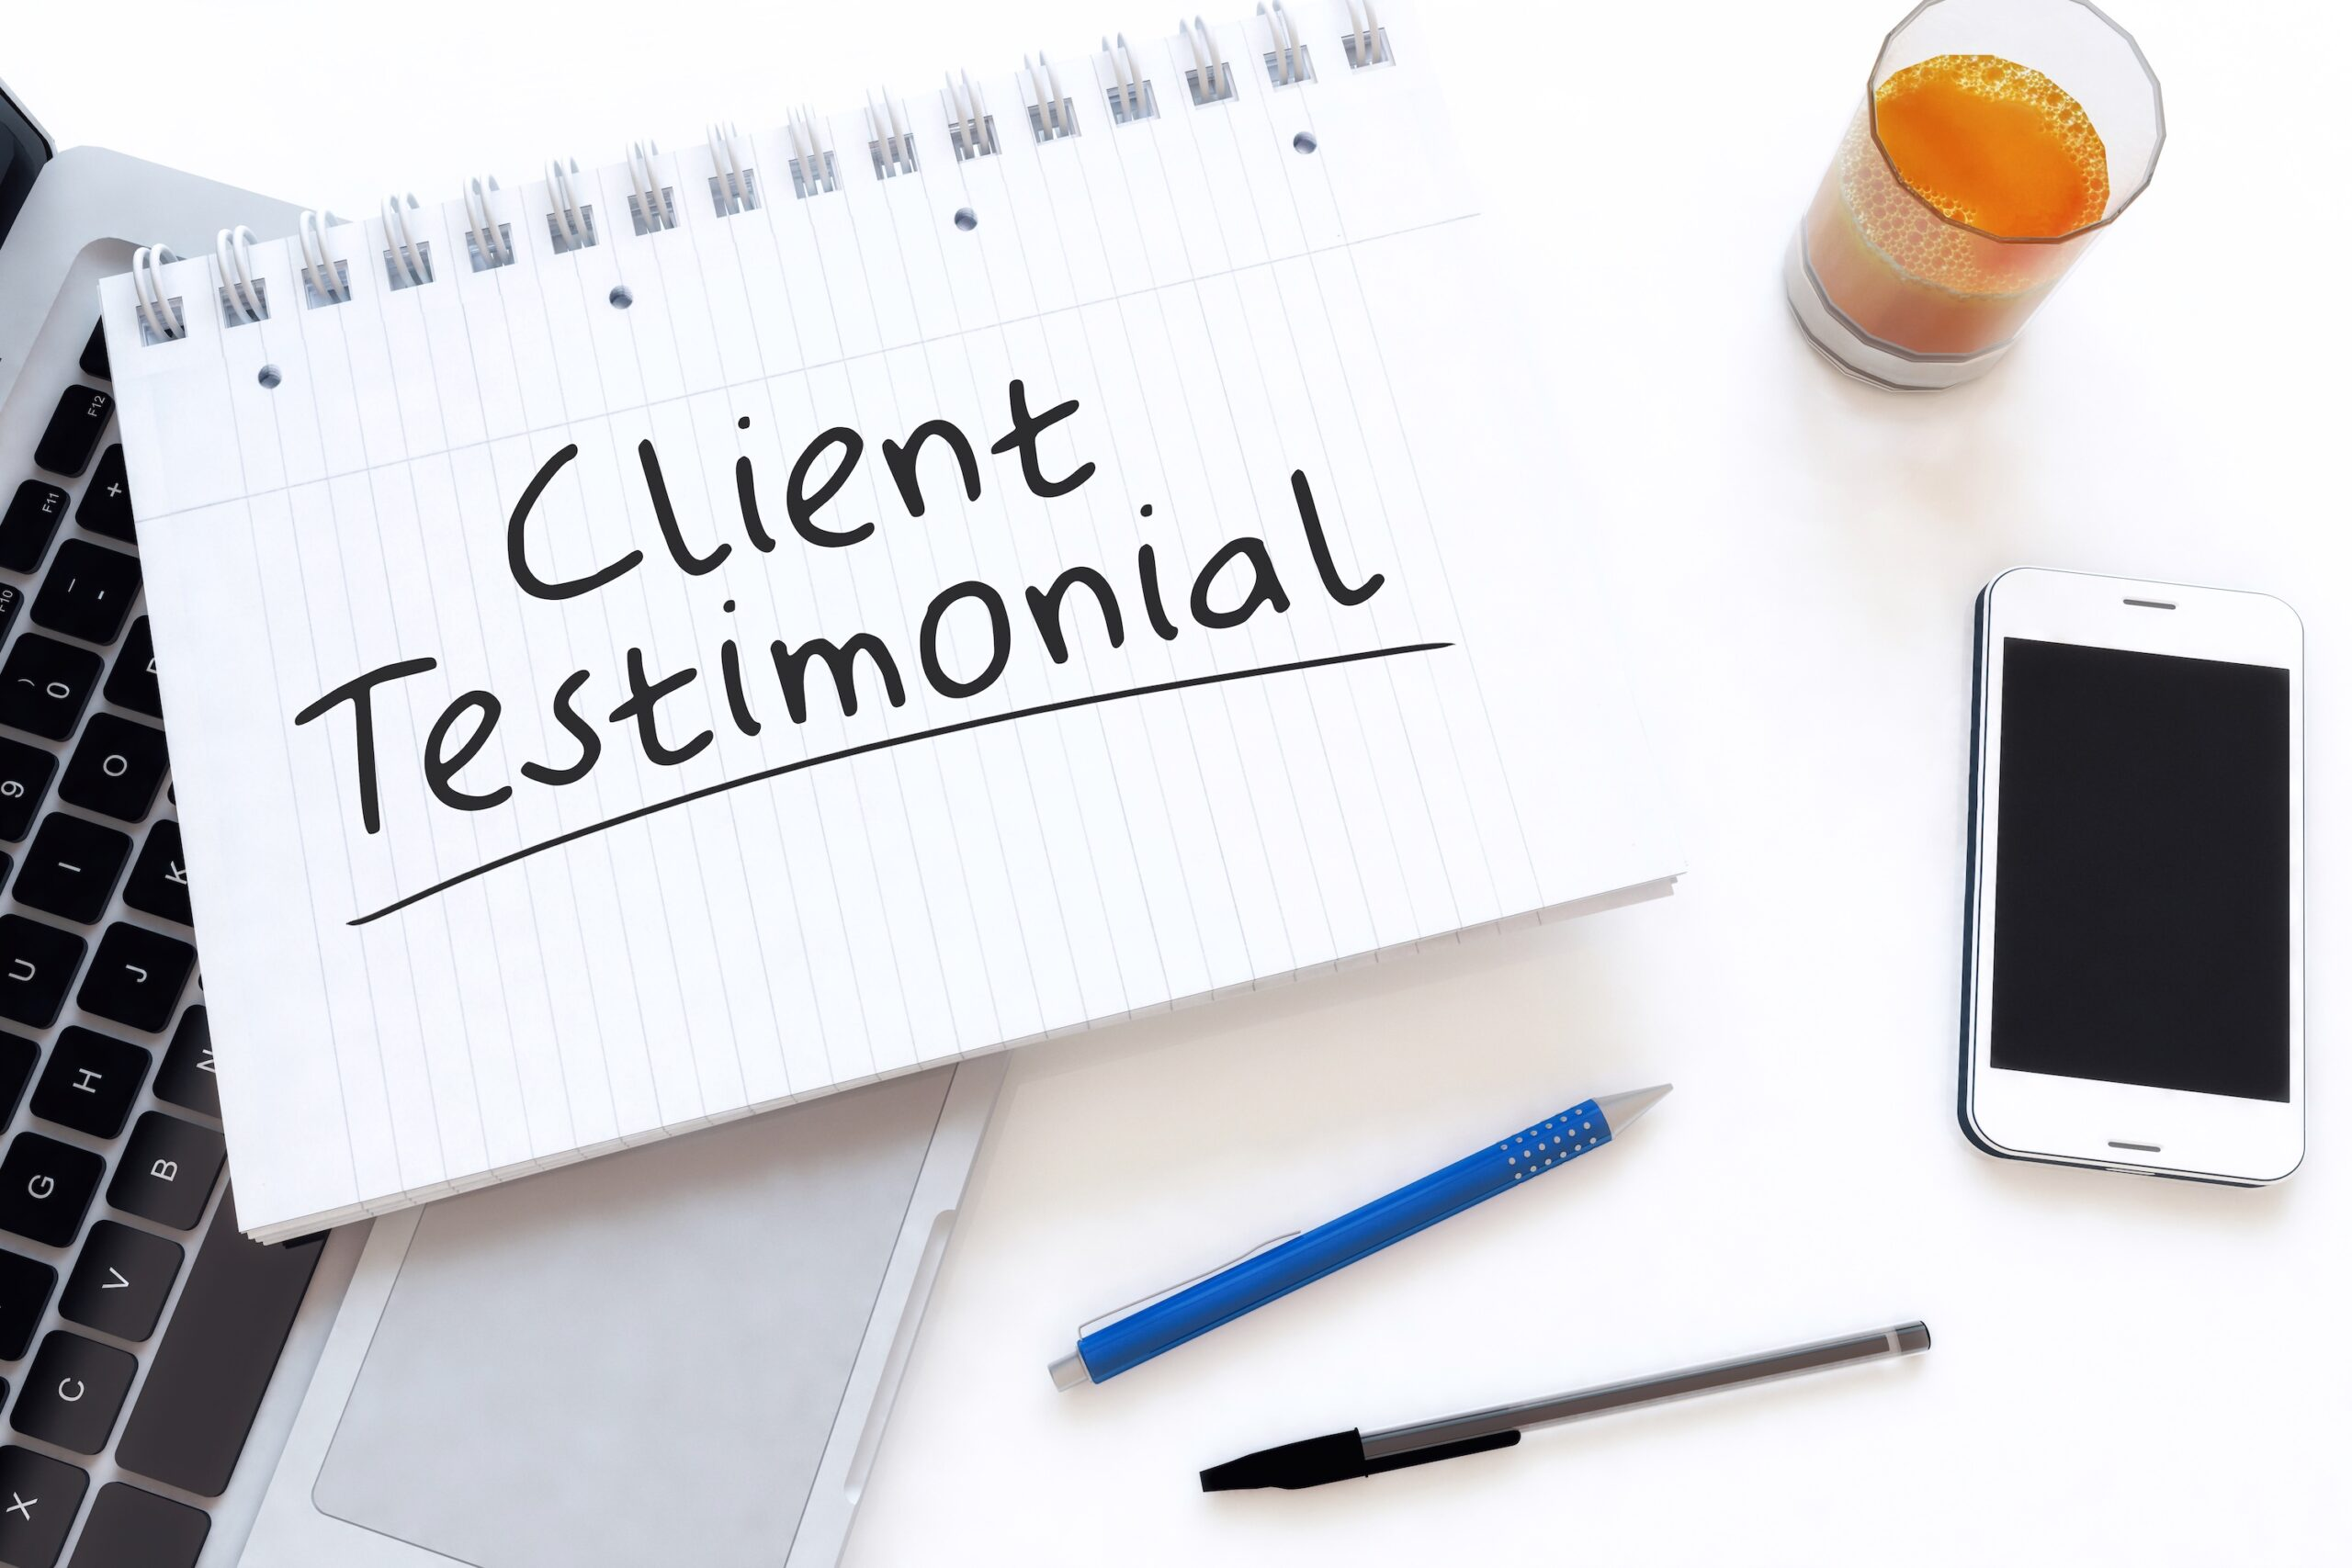 5 Tips On How To Get and Use The Power of Testimonials